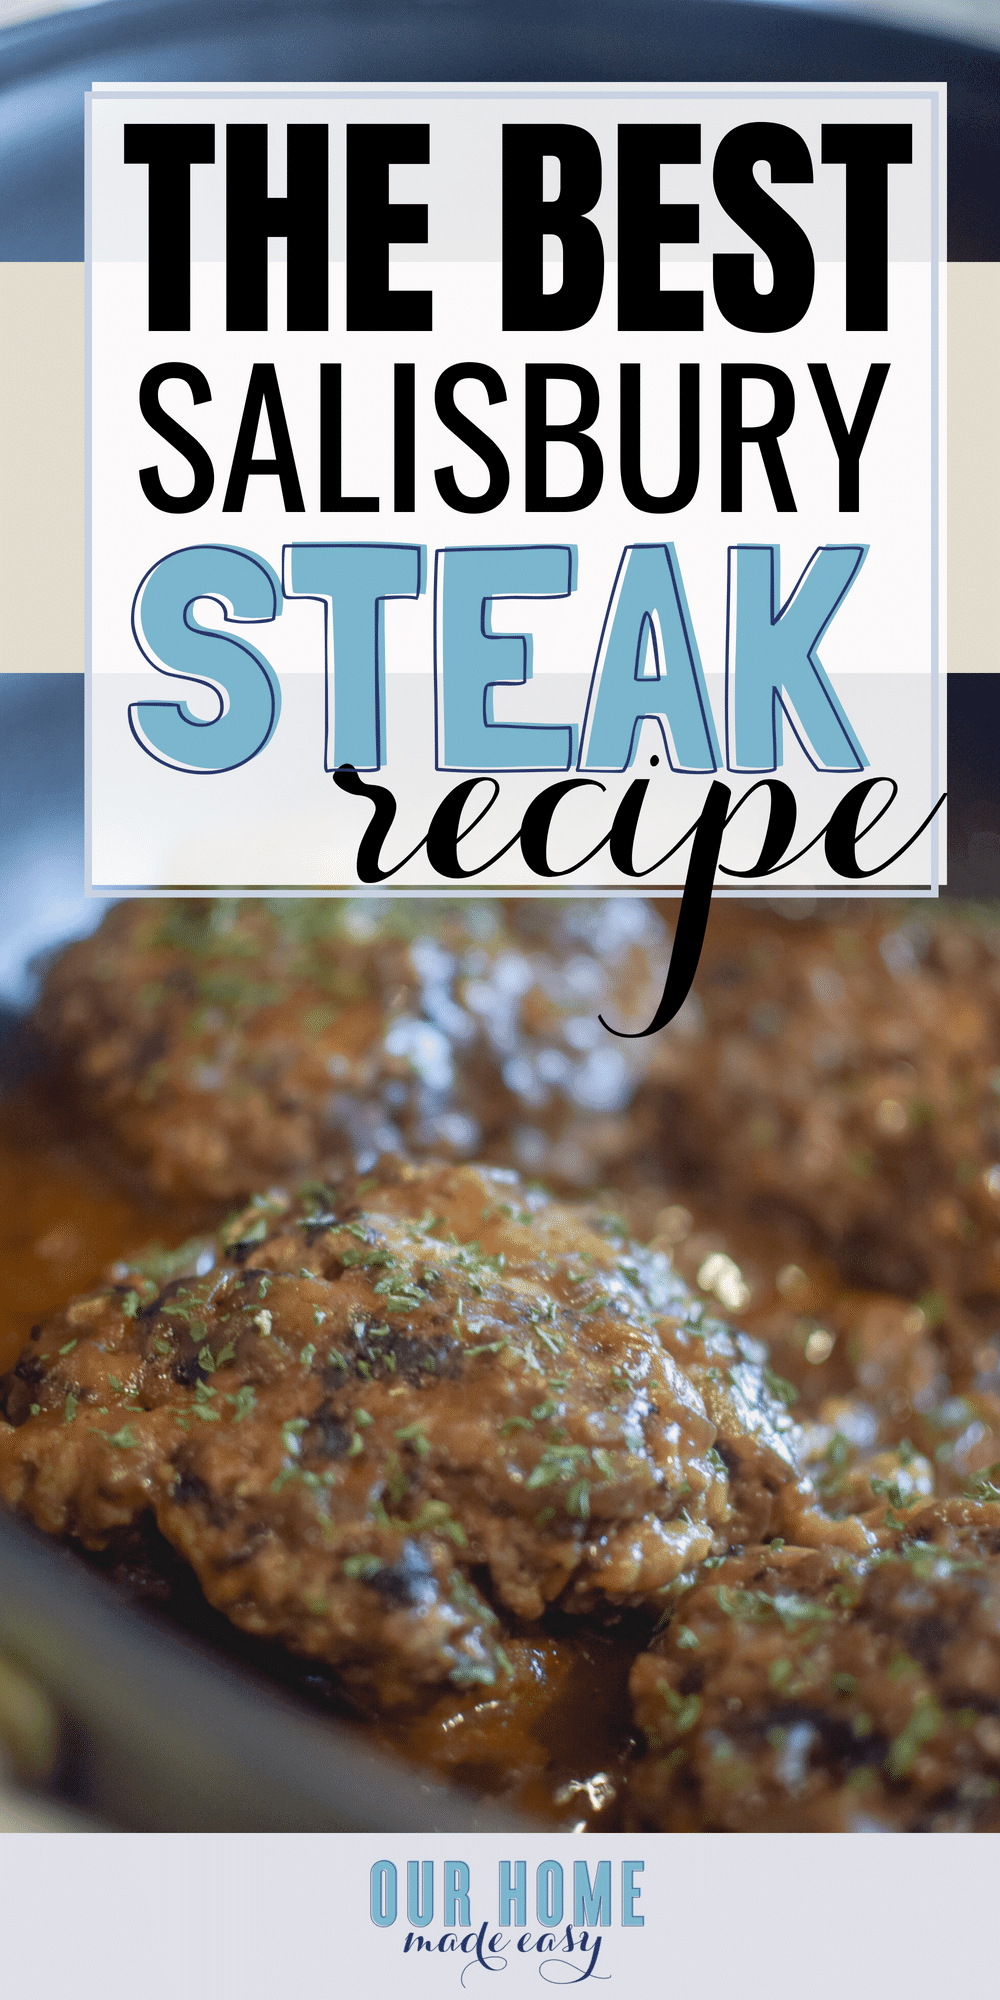 This is the BEST salisbury steak recipe and it's so easy! Make this recipe for a delicious family dinner